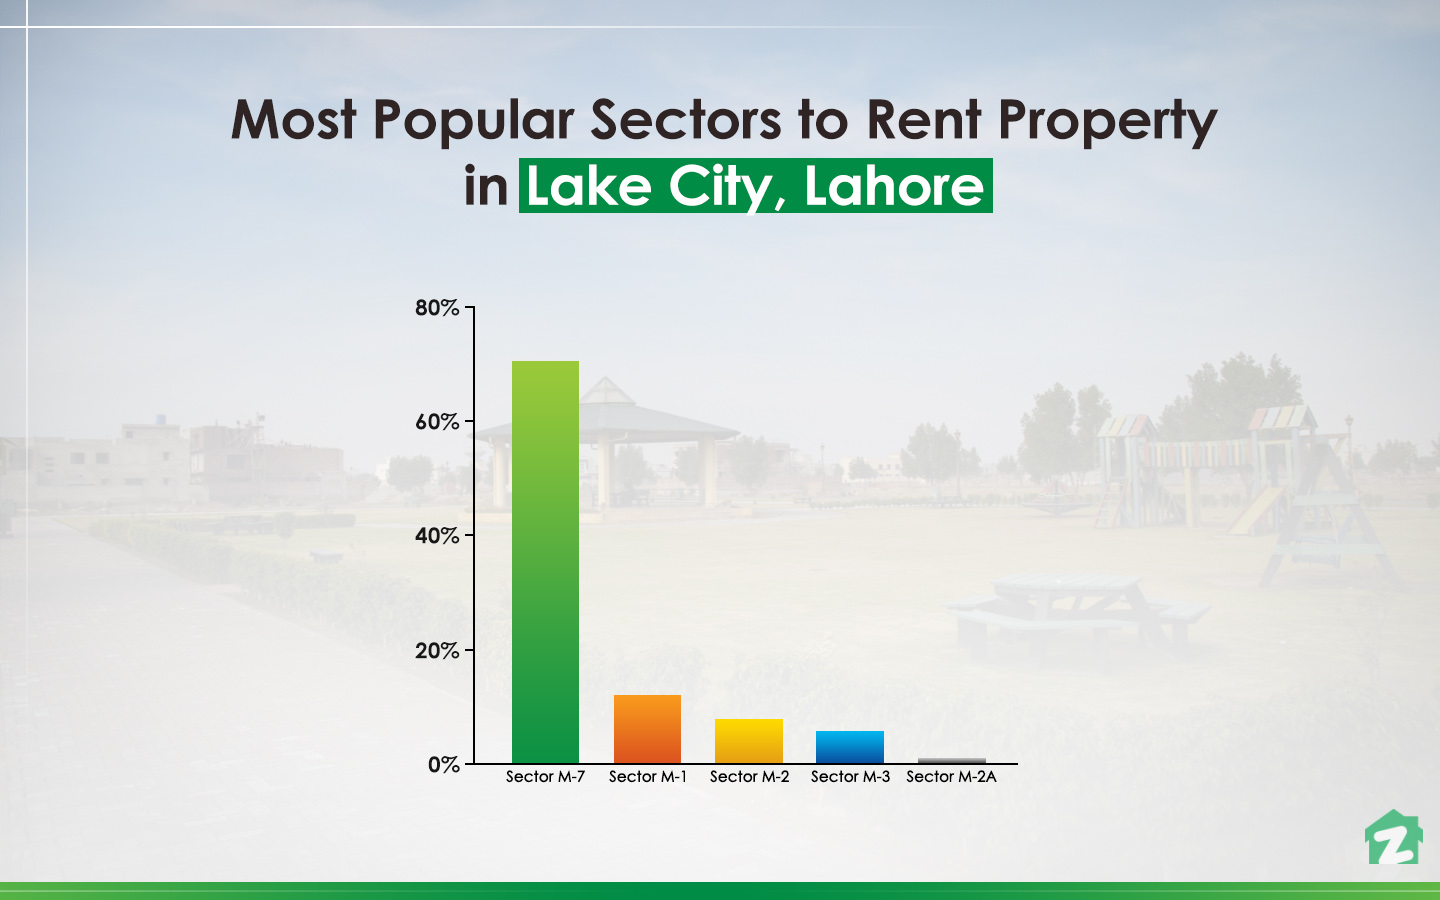 popular sectors in Lake City, Lahore for renting properties